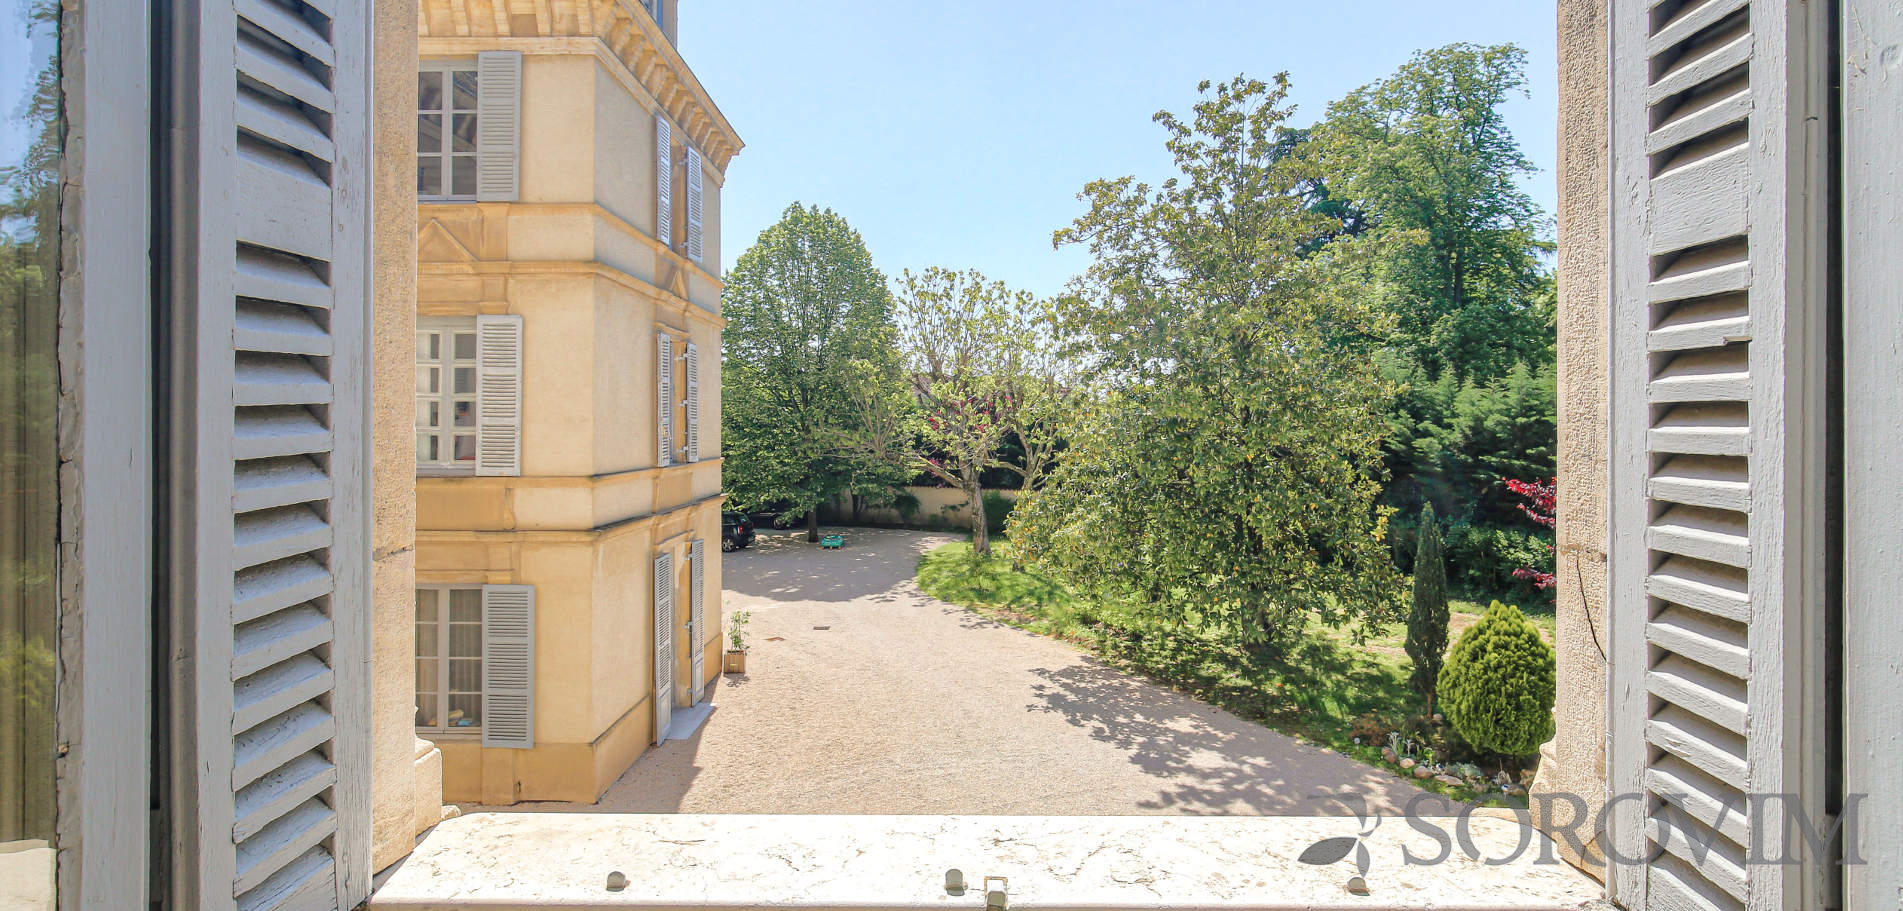 Vente appartement 132 m² - Ecully